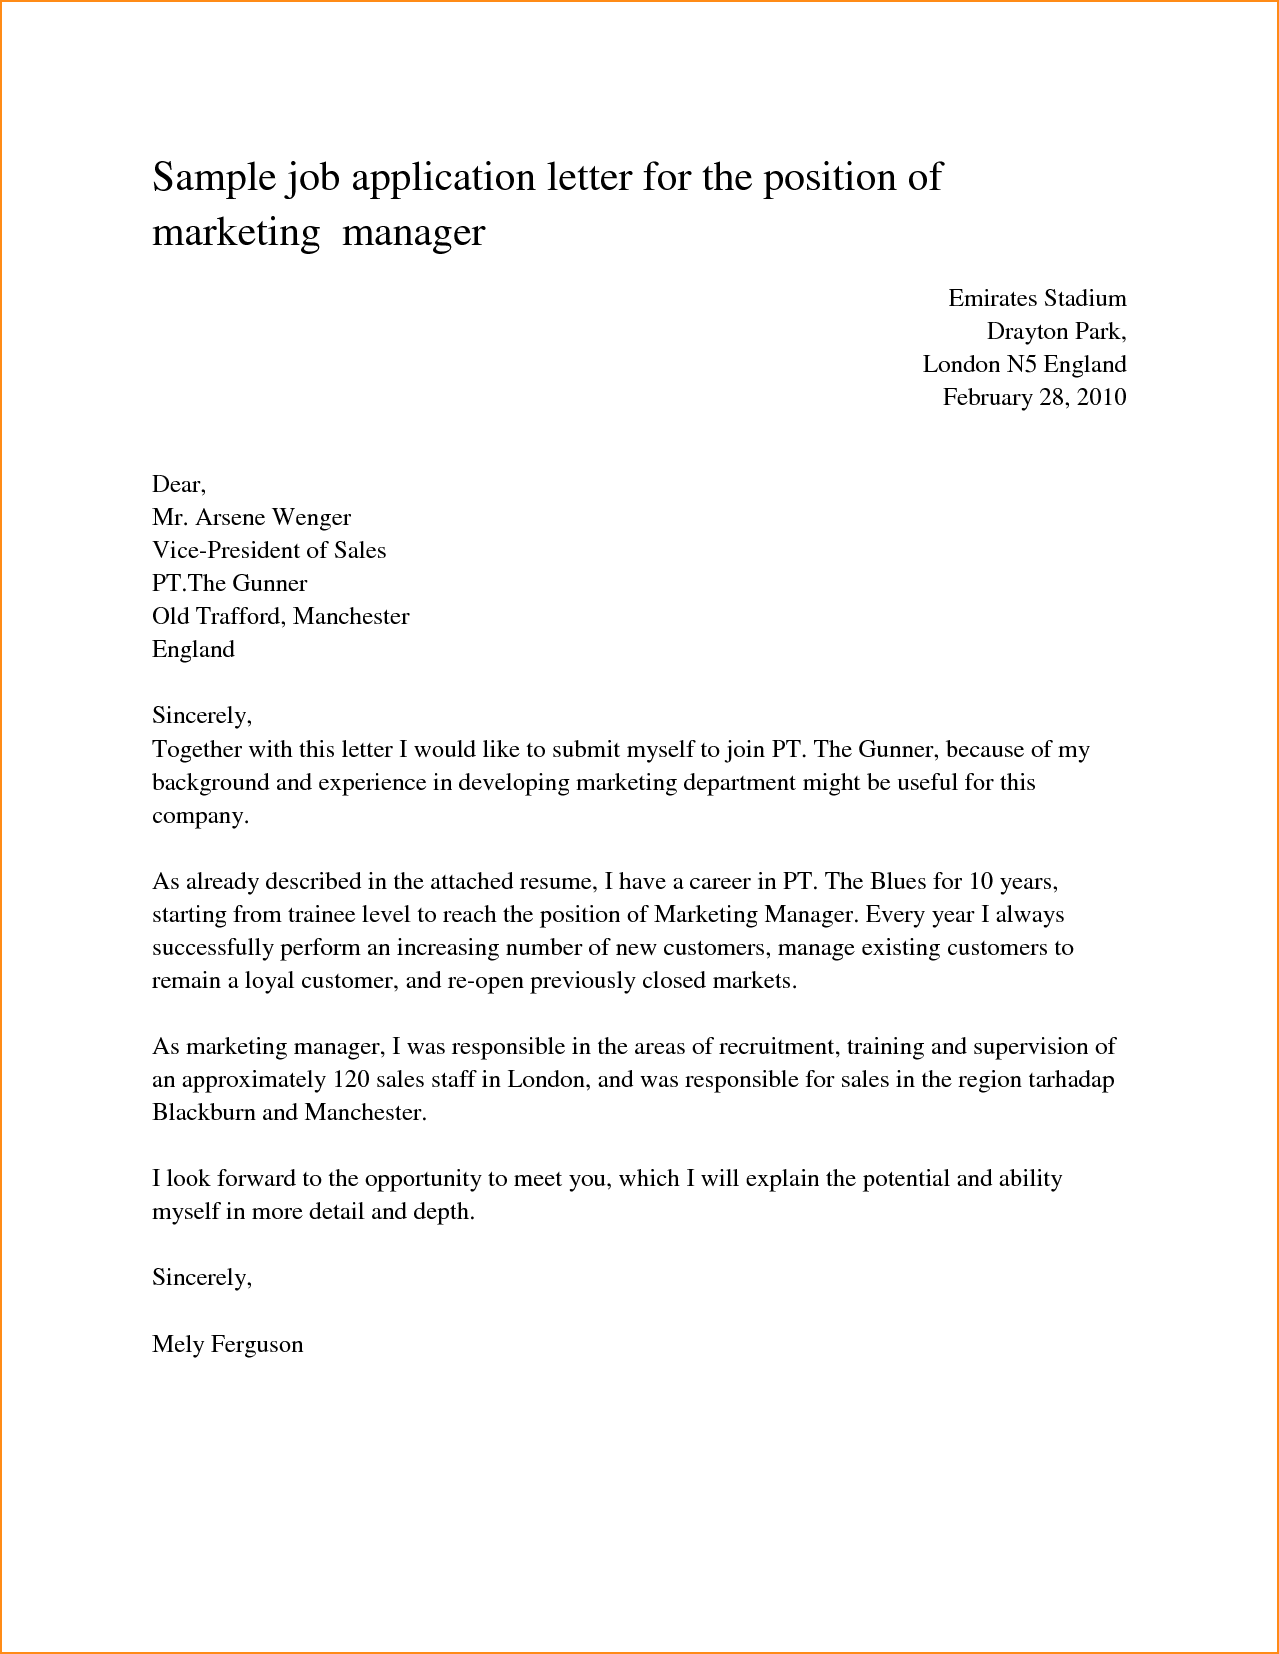 Superior Sample Job Application Letter For The Position Marketing Manager Any Resumed Idea Letter Of Application